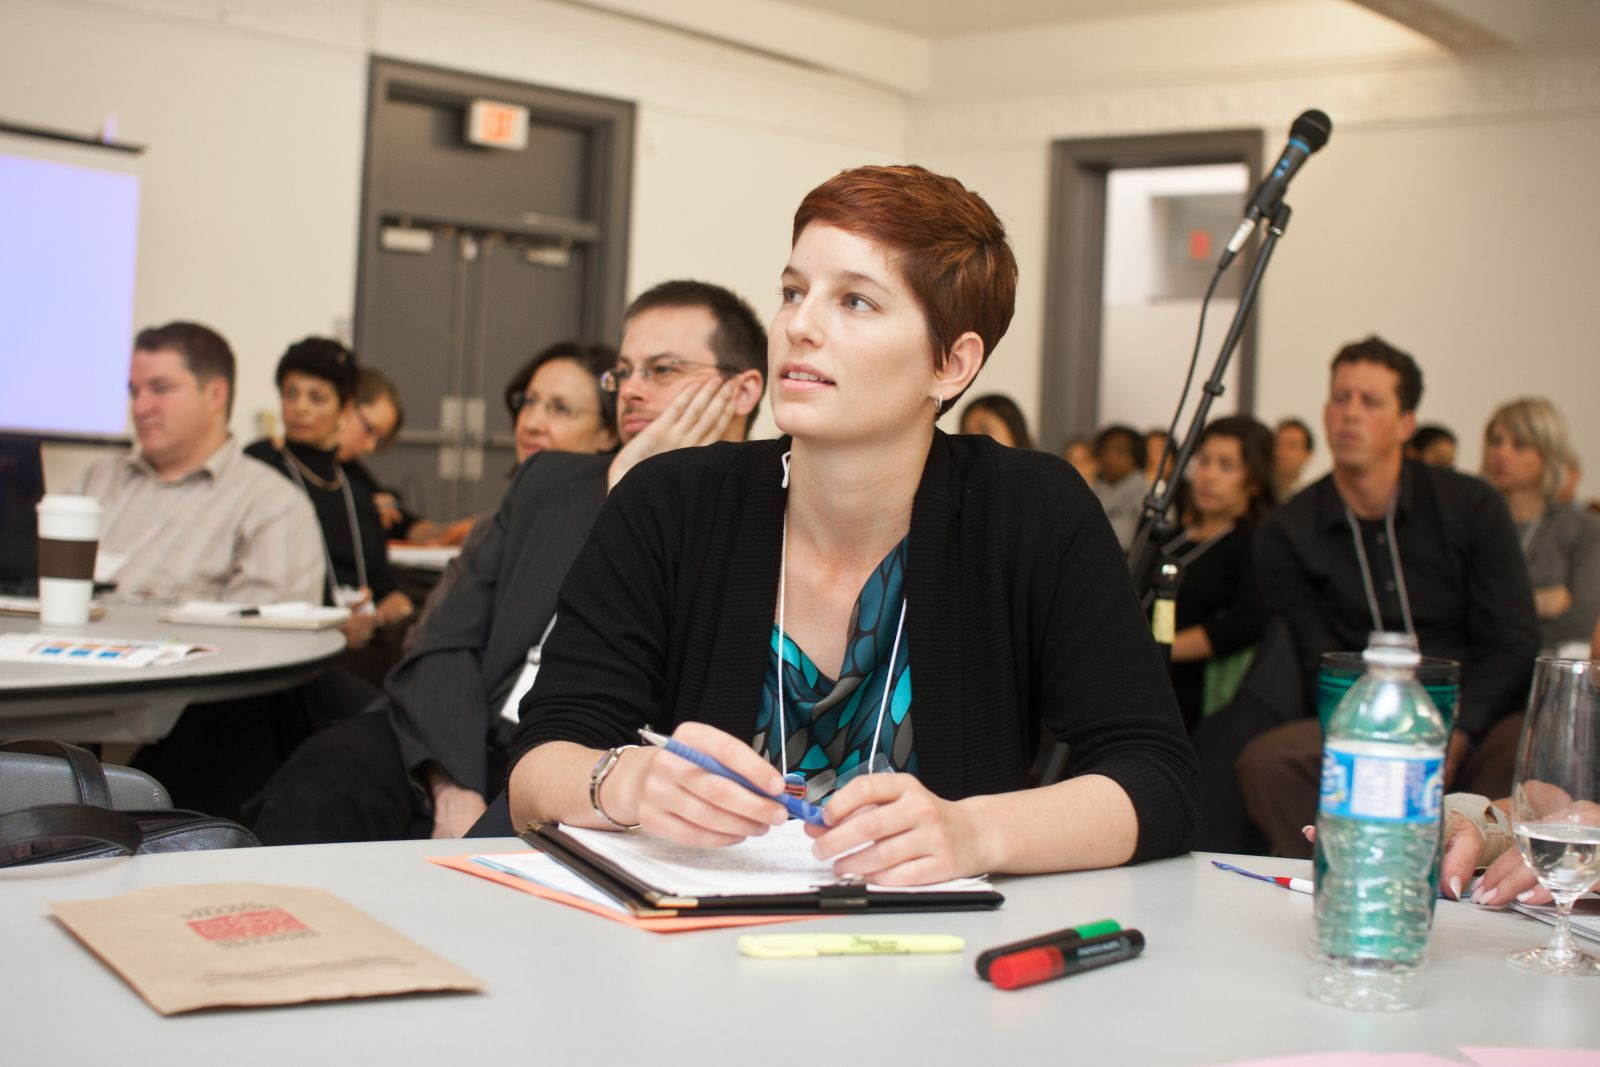 A female participant listens to a speaker (out of frame) at the OCIC GCF 2010.